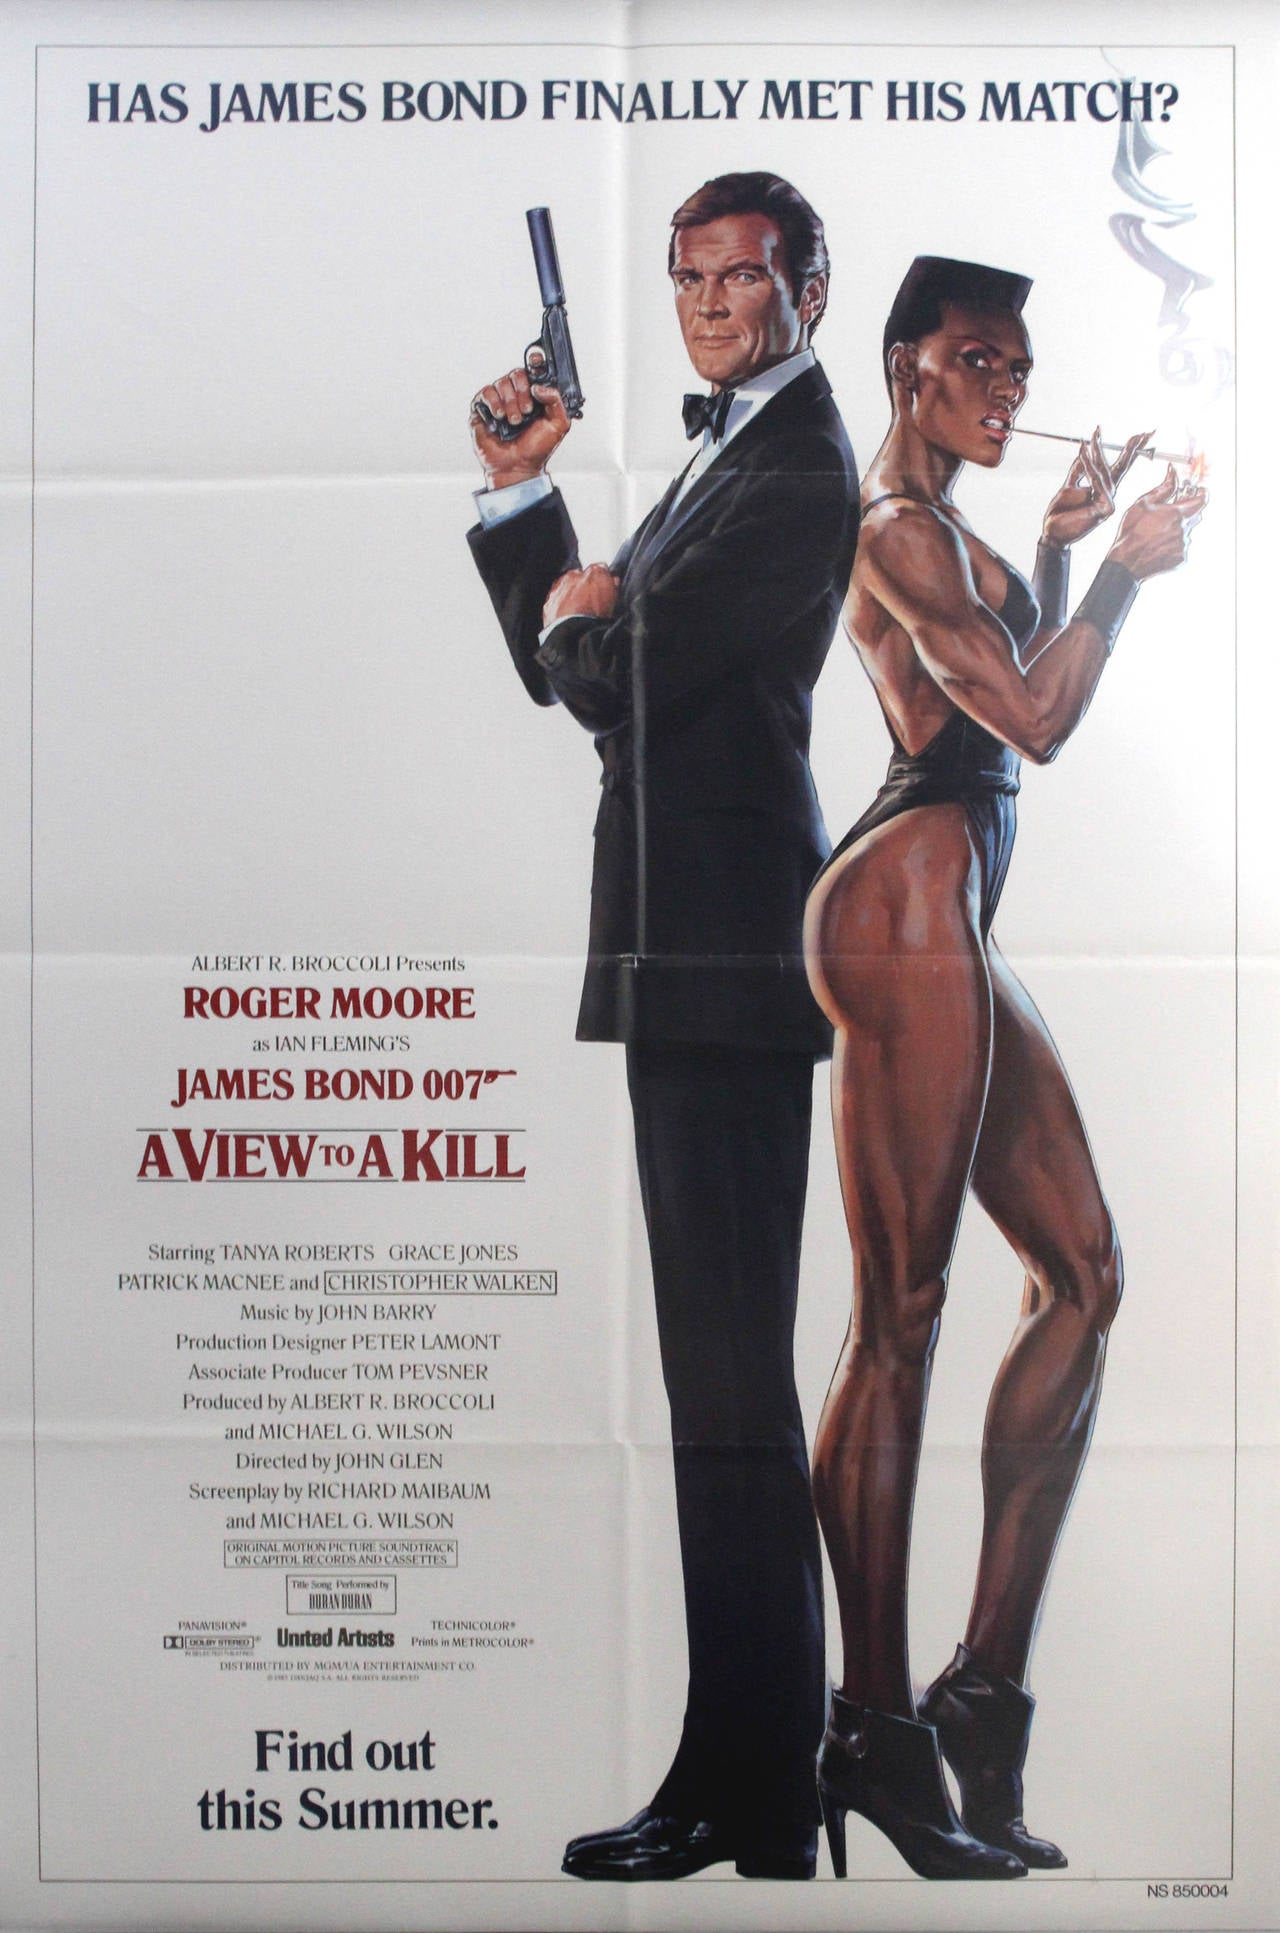 Original Vintage 007 James Bond Movie Poster - A View To A Kill - Roger Moore